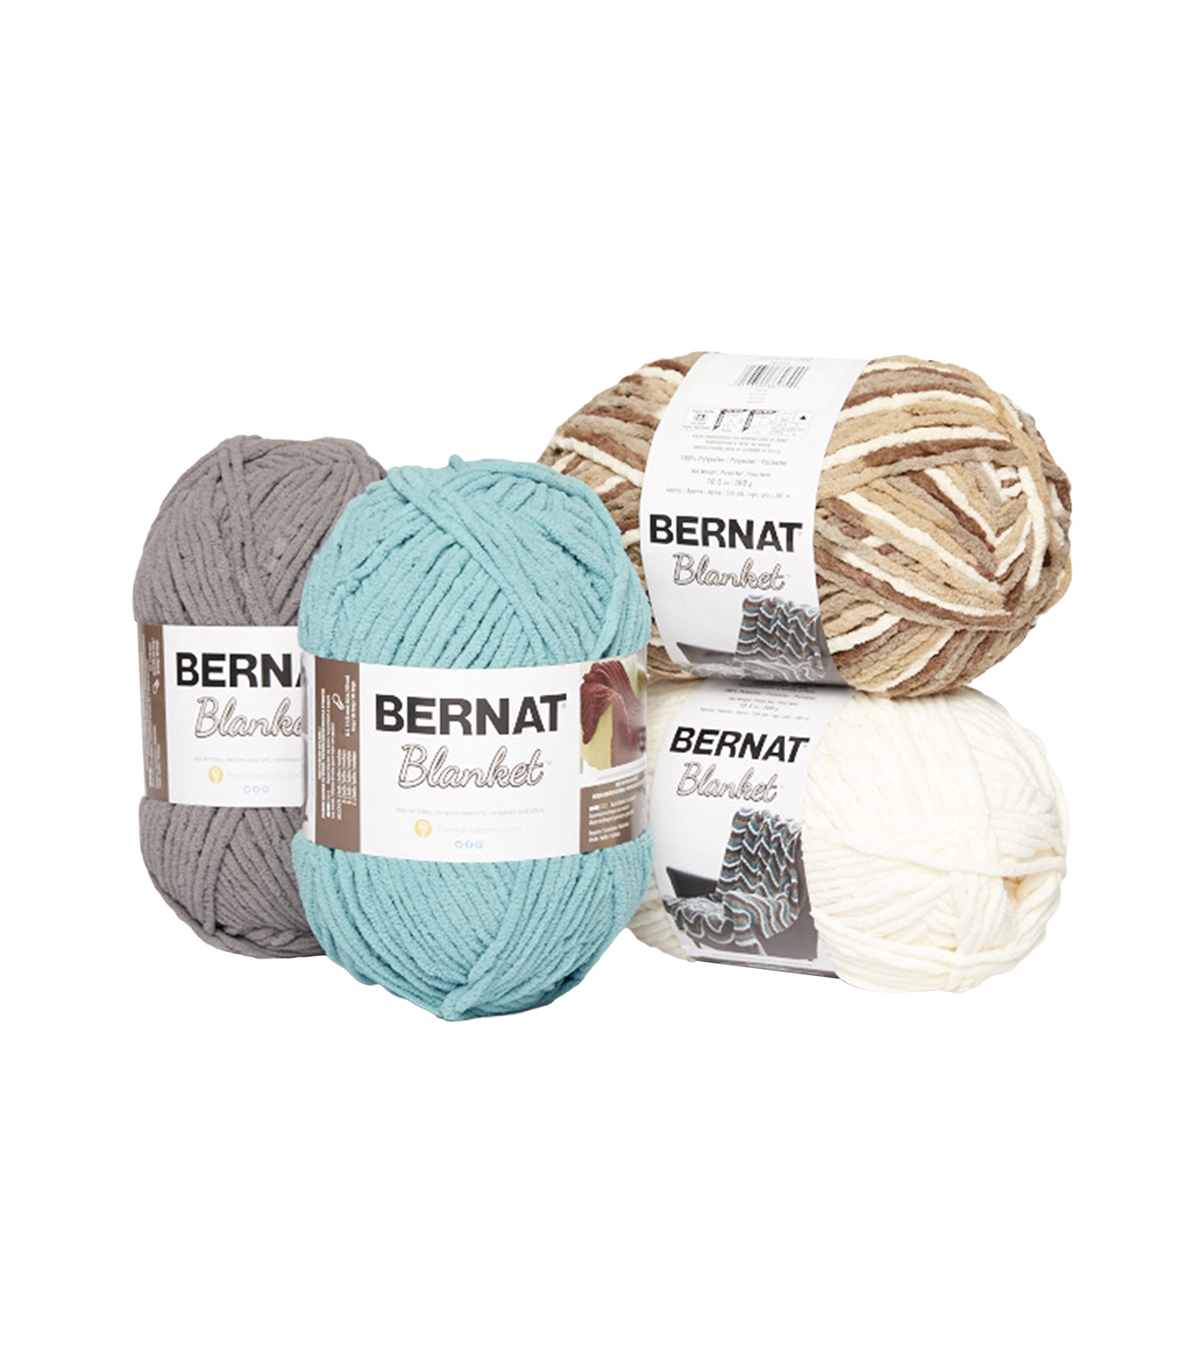 Sample colors for wraps and larger blankets